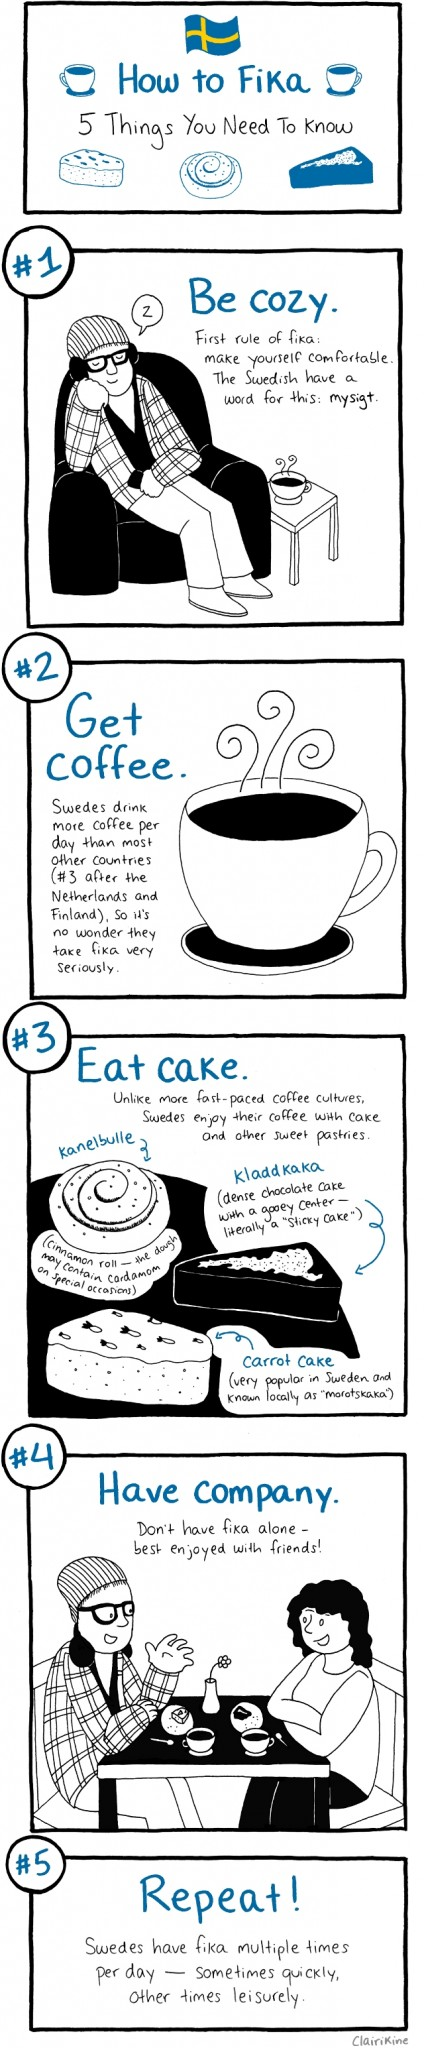 how-to-fika-sweden-212x1024@2x